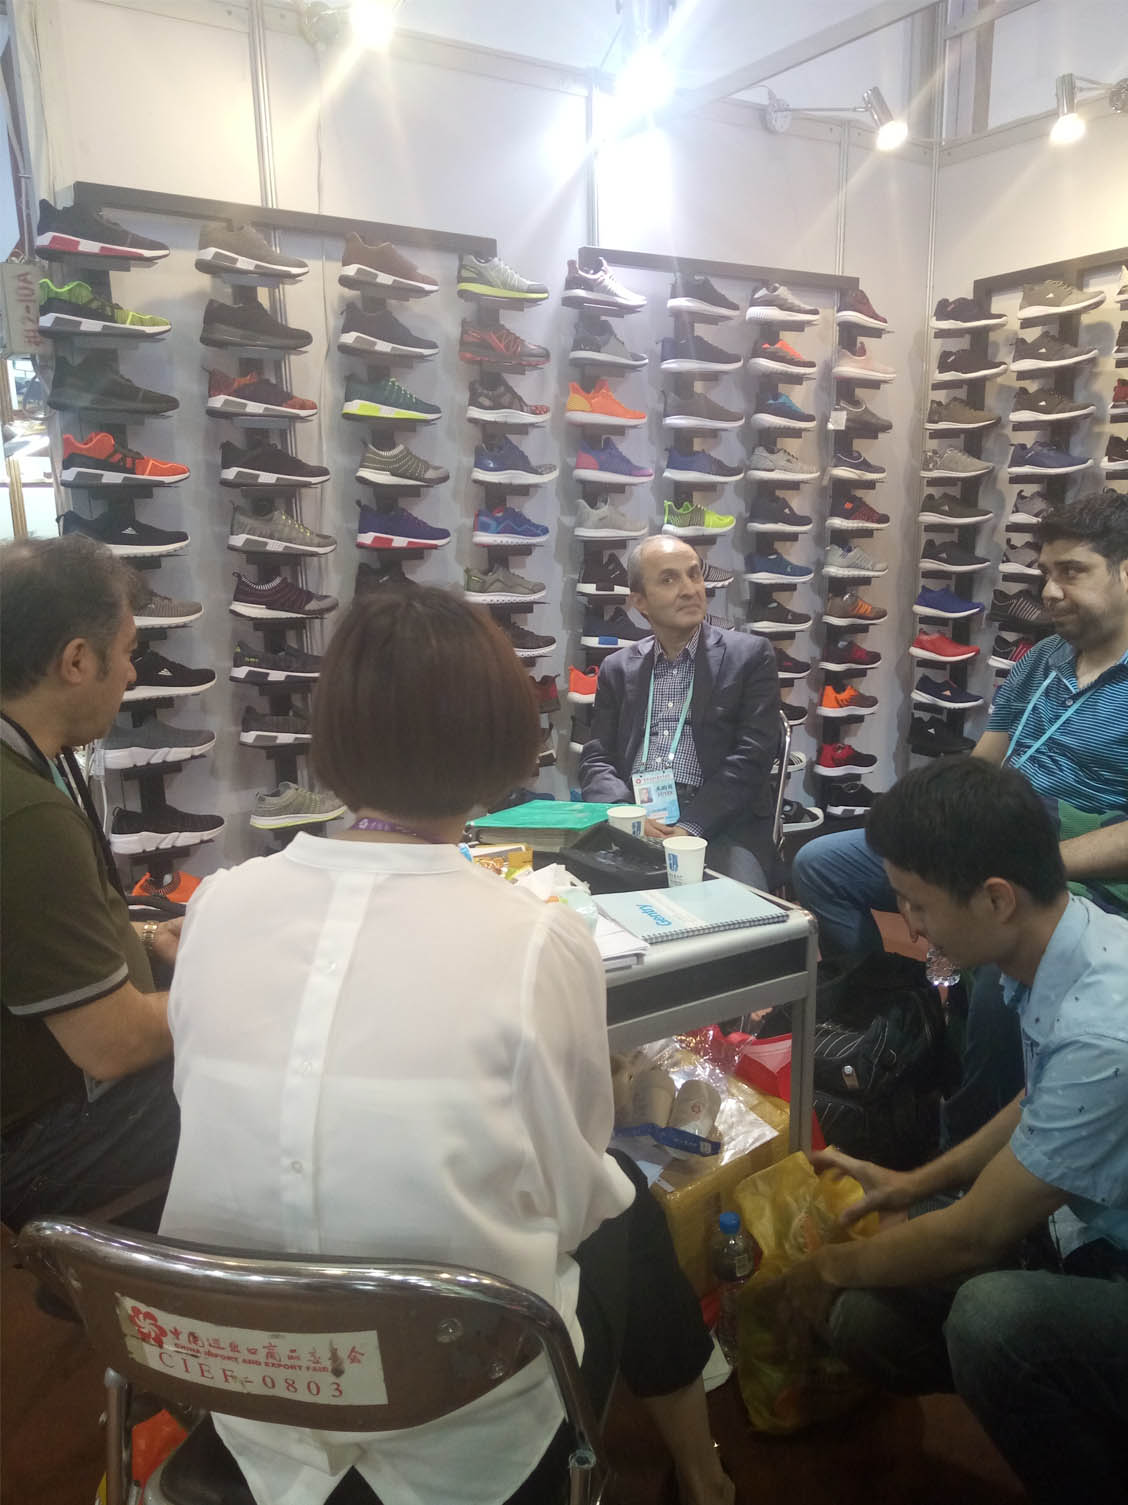 121 canton fair-4 (the proceeding of placing the order)